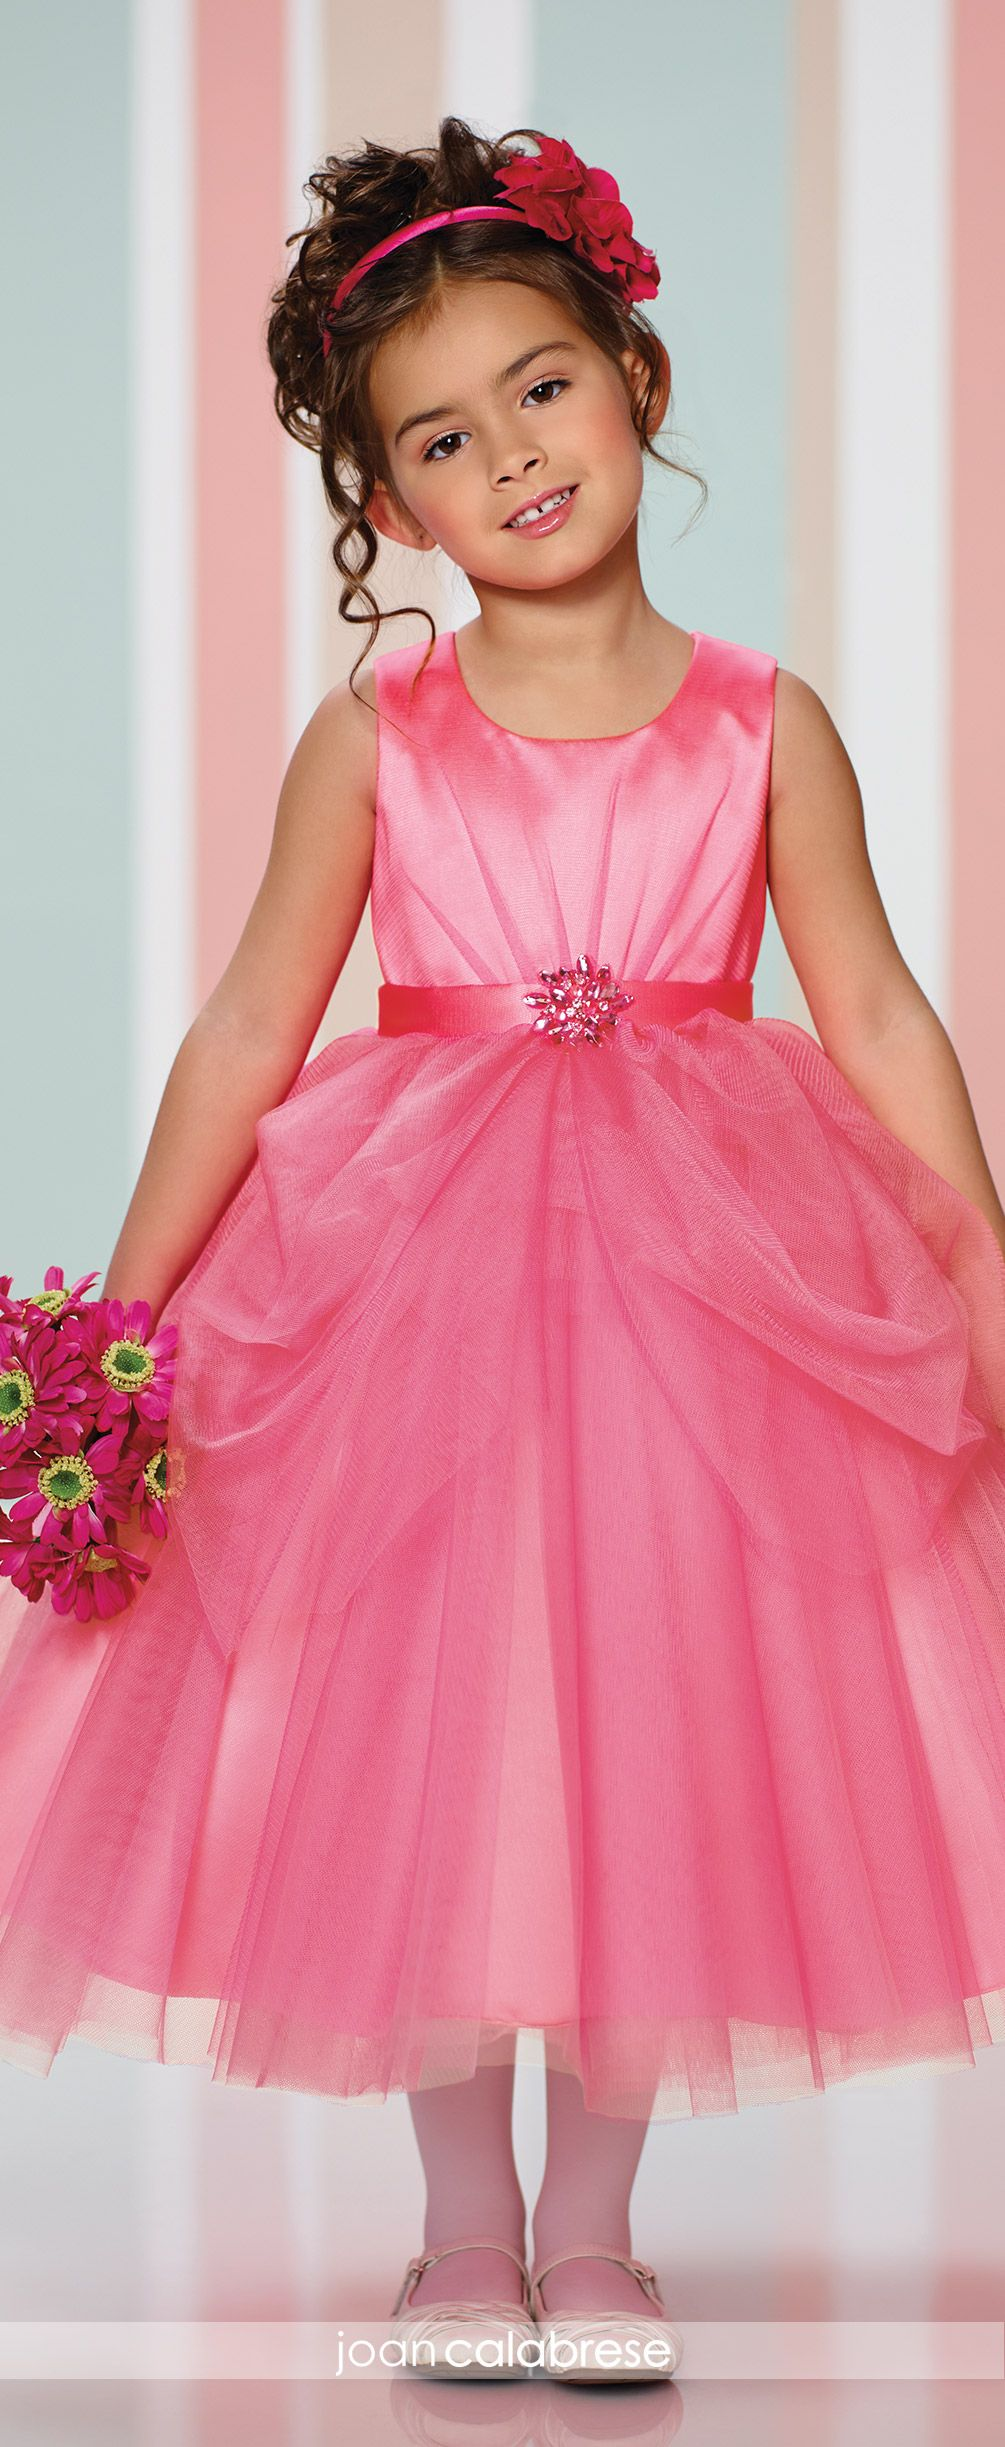 Joan calabrese flower girl dresses pink flower girl dresses joan calabrese for mon cheri fall 2016 style no 216324 bright pink flower girl dress in satin and tulle with doulbe layered pick up skirt mightylinksfo